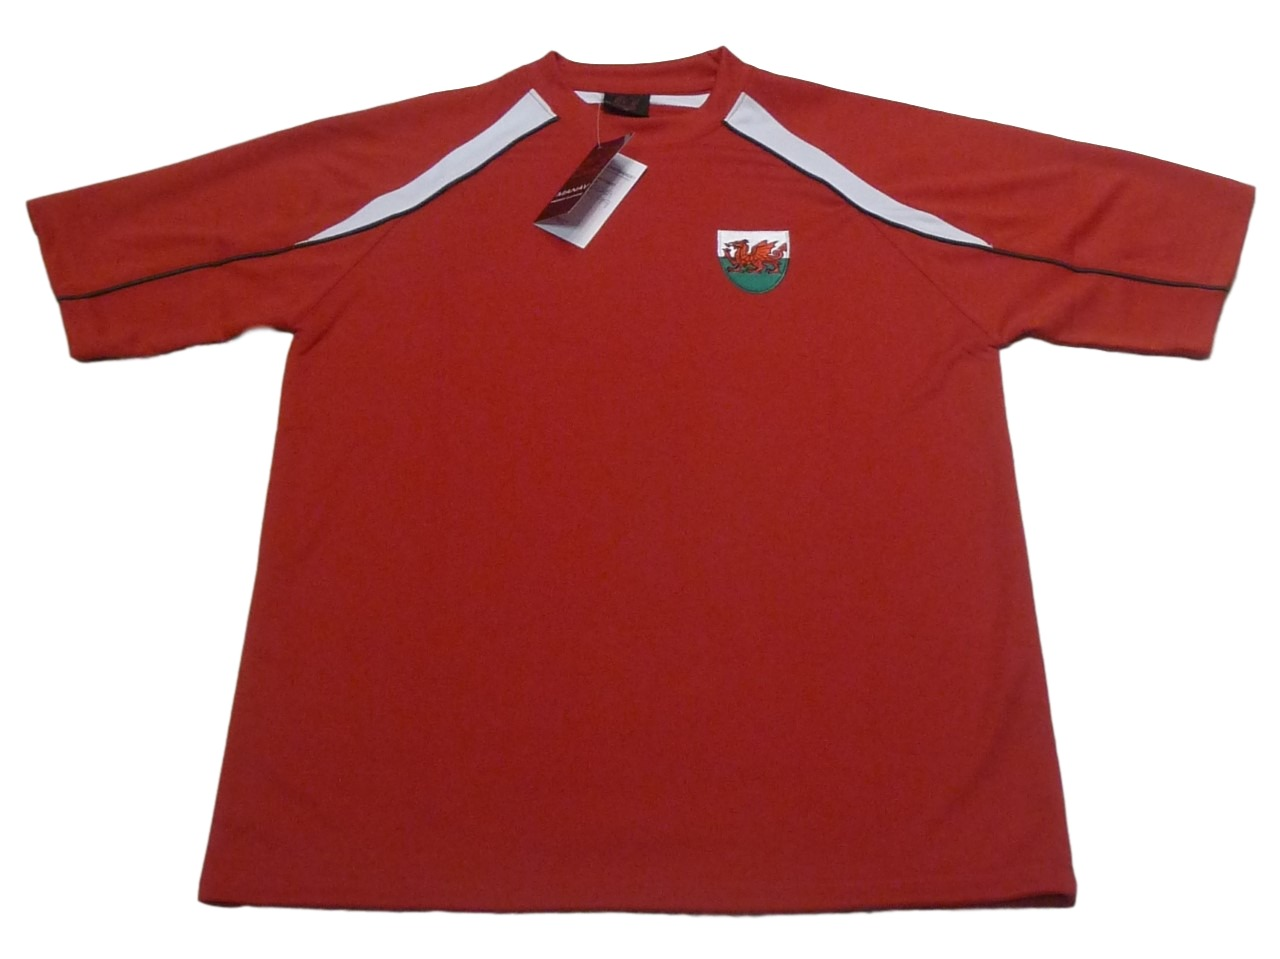 Euros Kids Welsh Panel Cooldry Football T-Shirt